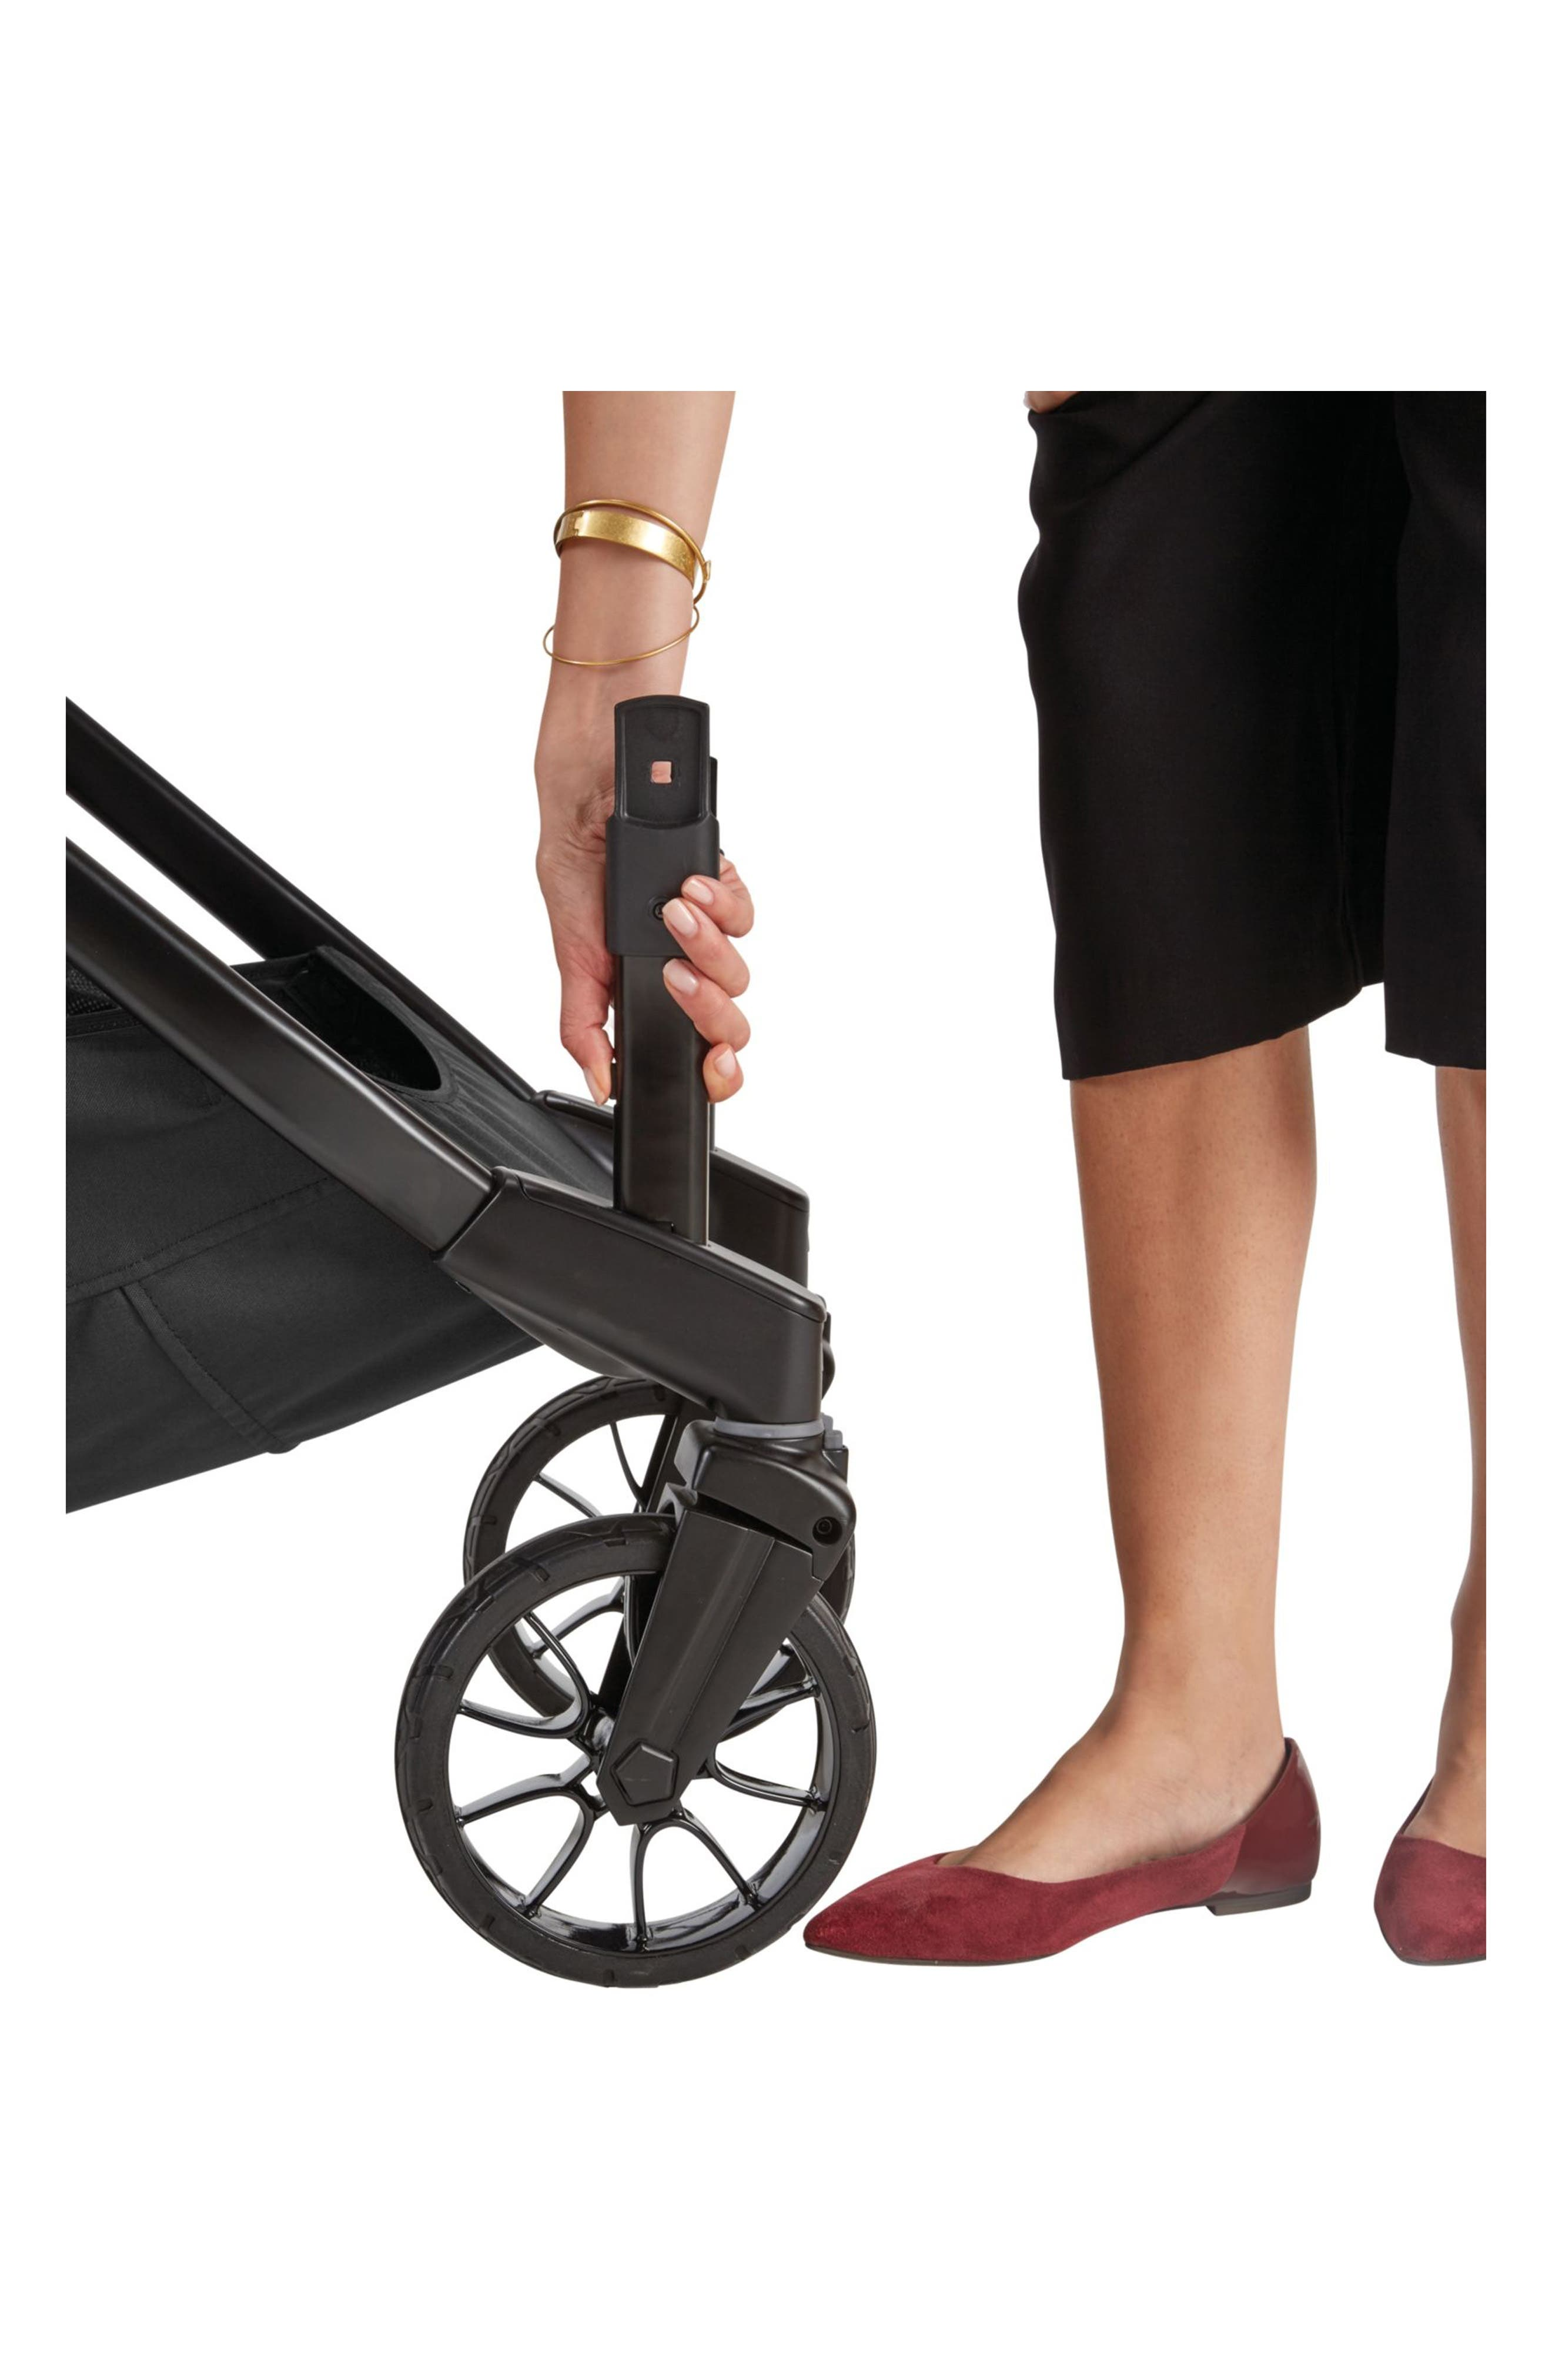 Baby Jogger Second Seat Adapter Kit